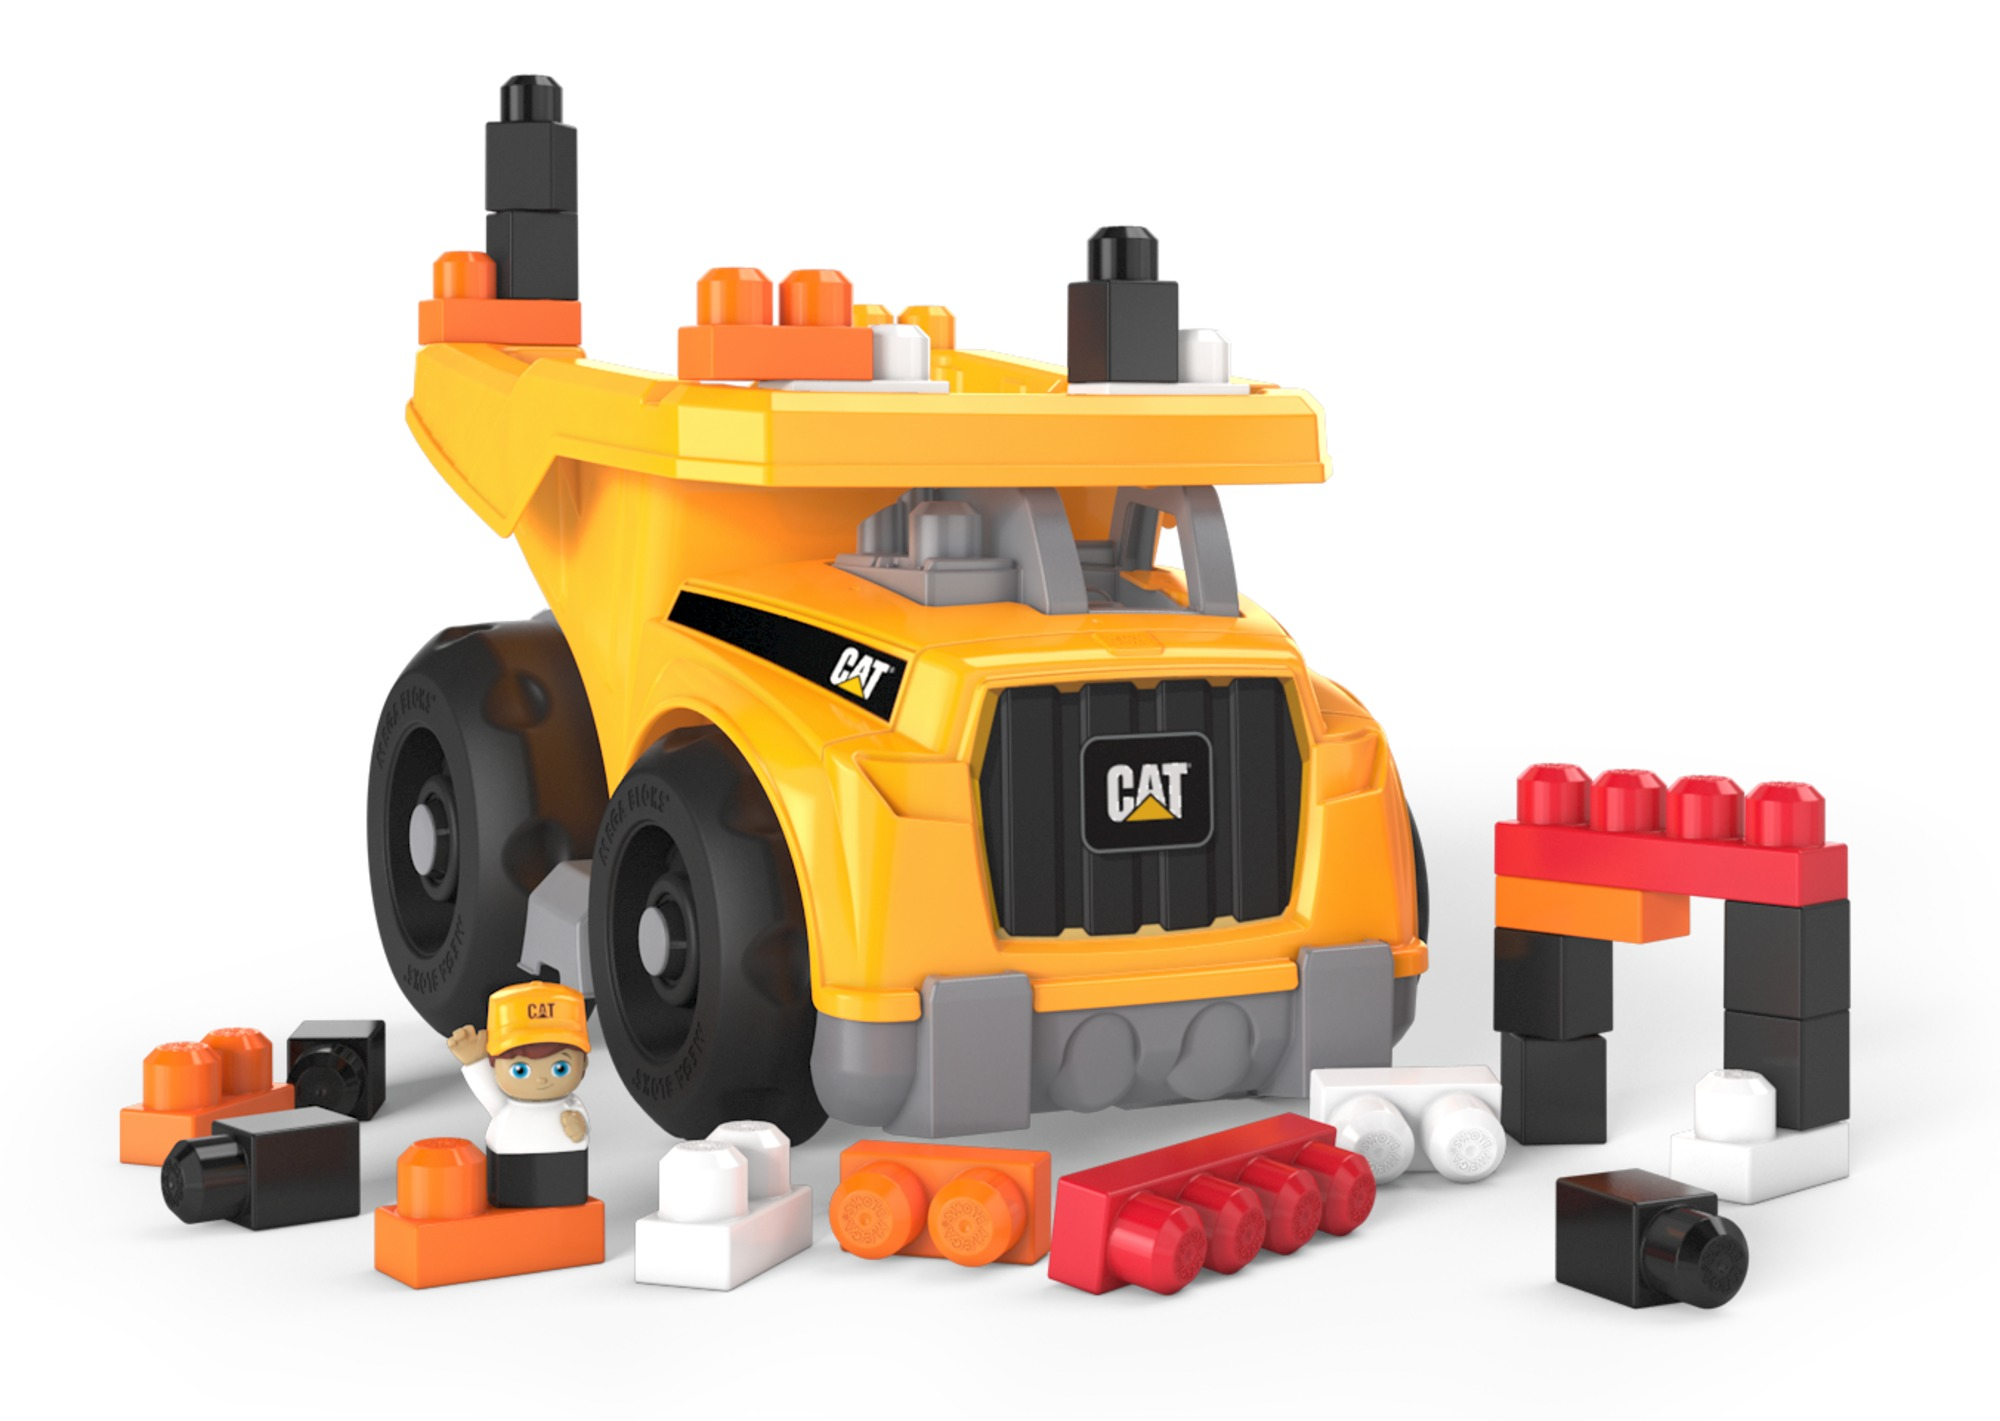 Mega Bloks CAT Large Dump Truck with Big Building Blocks, Buildng Toys for Toddlers (25 Pieces) (Walmart)